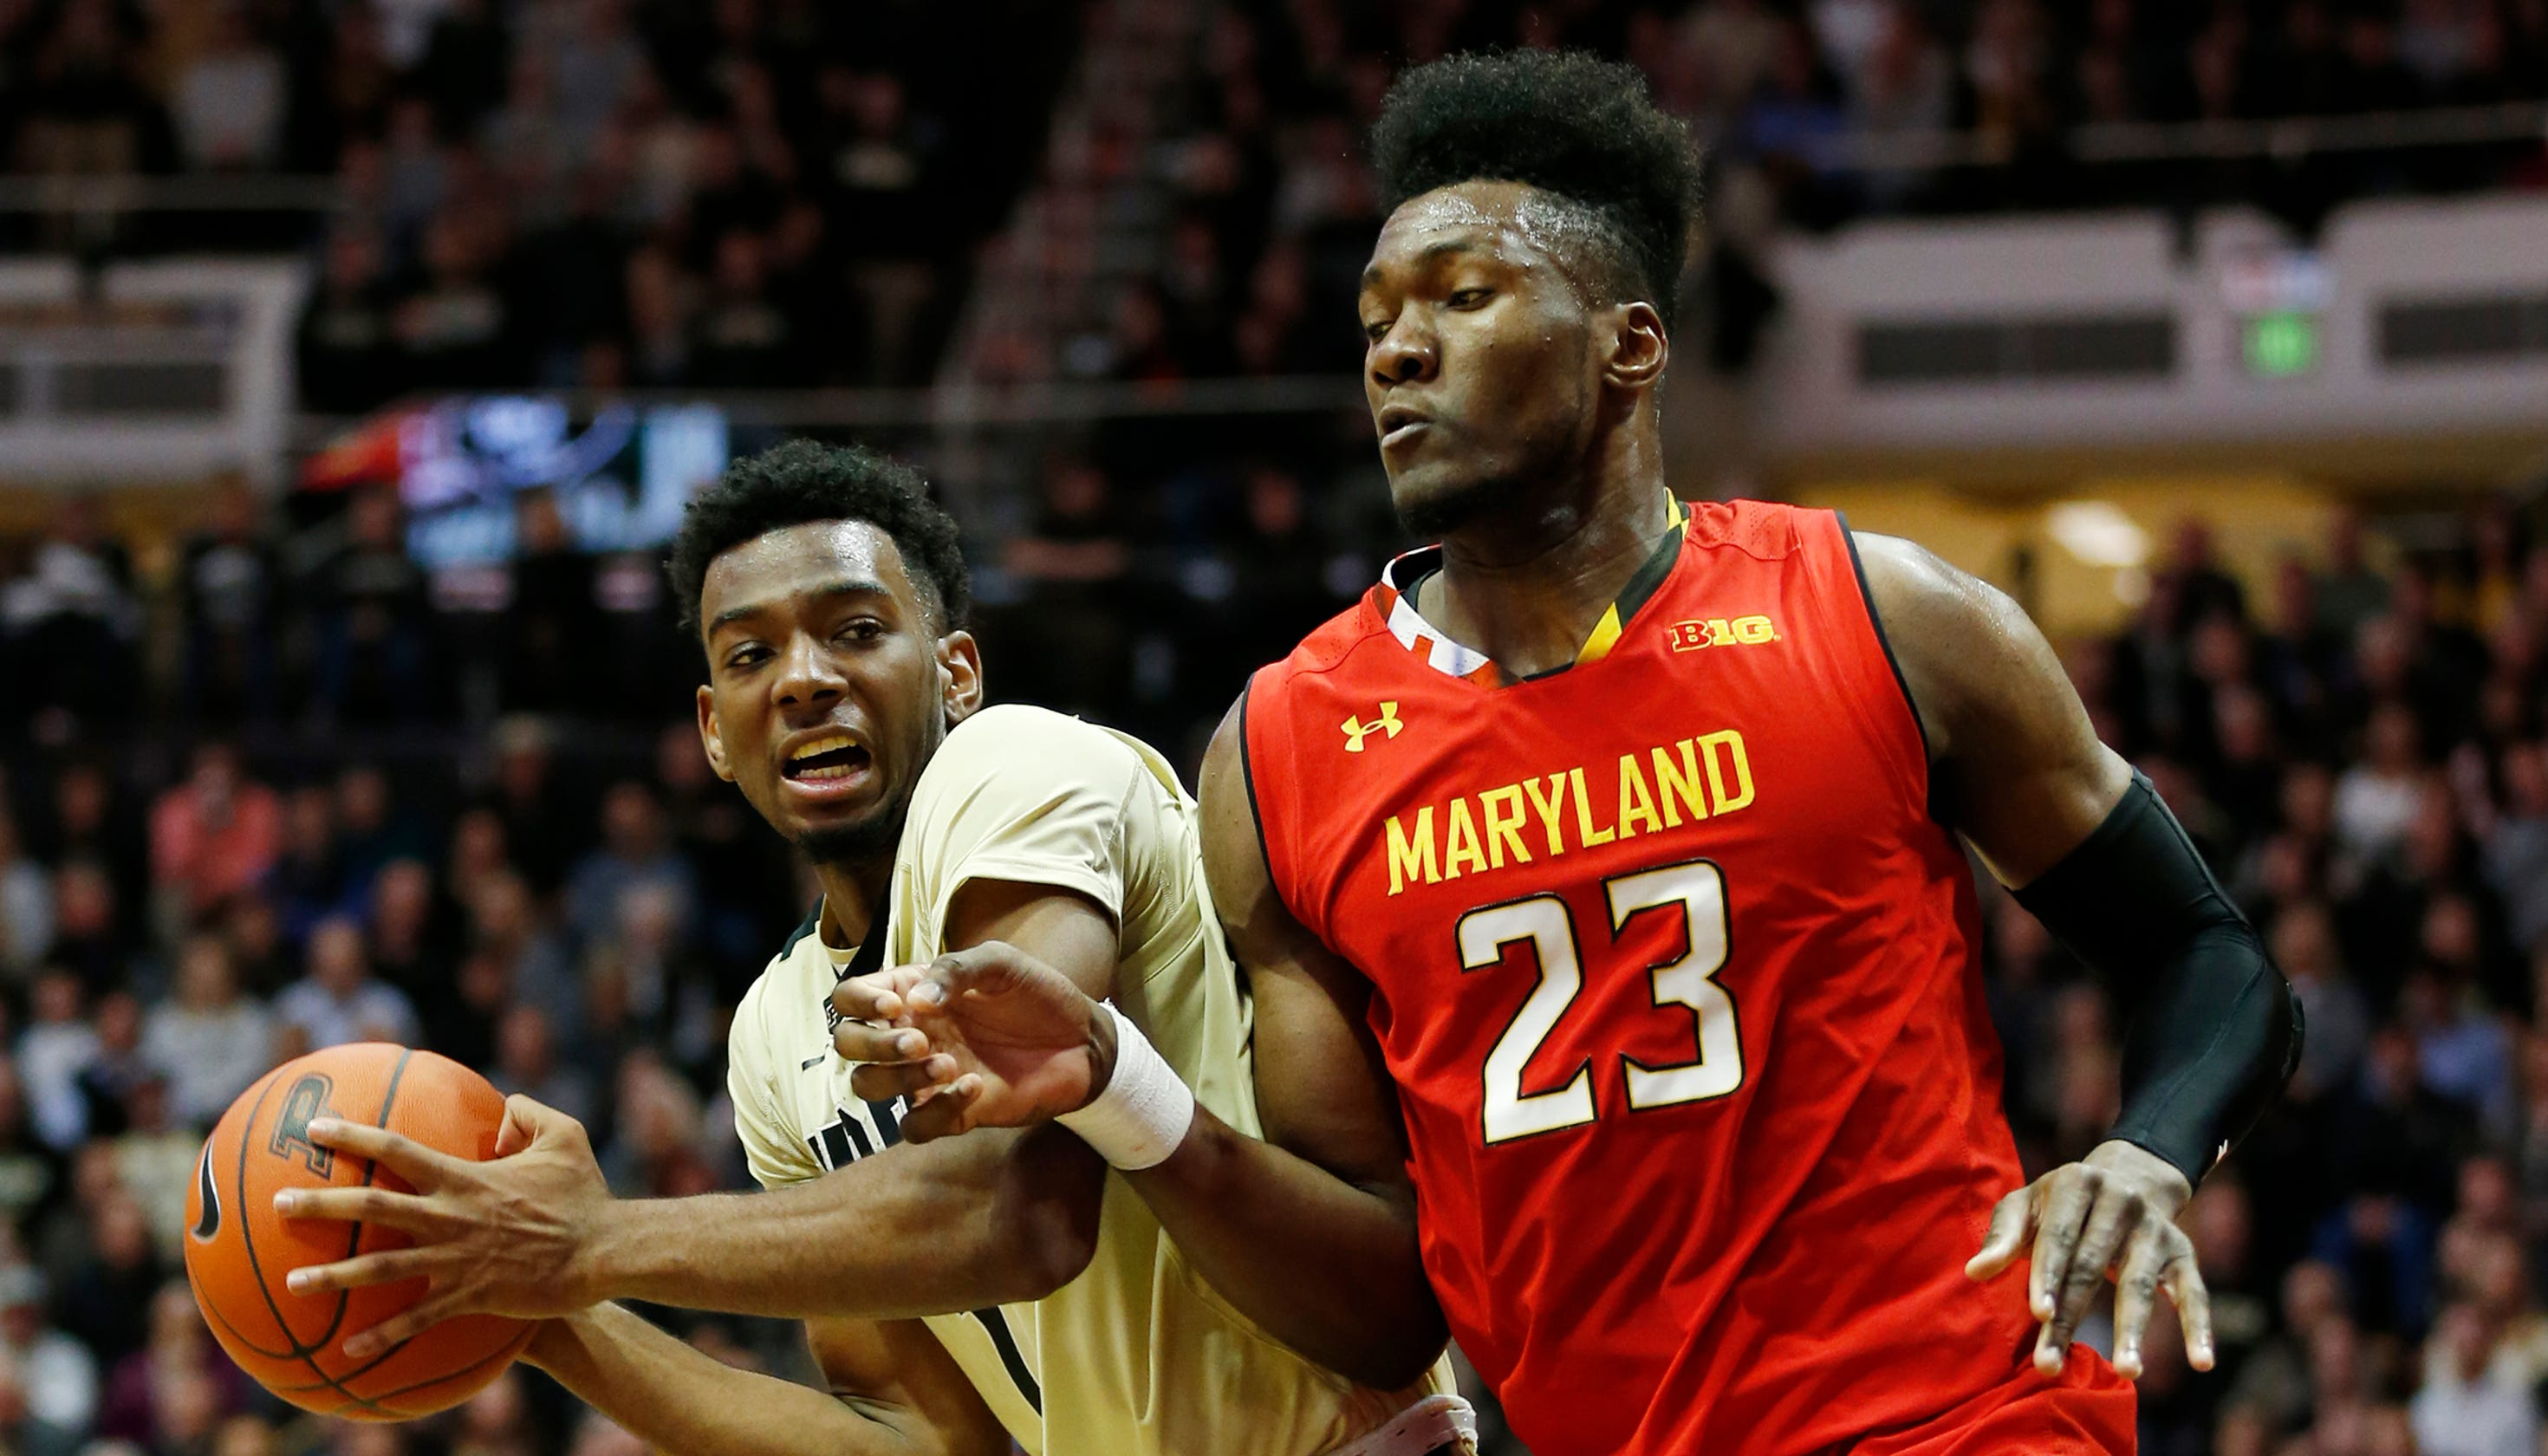 cf3e16f3629f Scouting No. 12 Purdue men s basketball at No. 24 Maryland